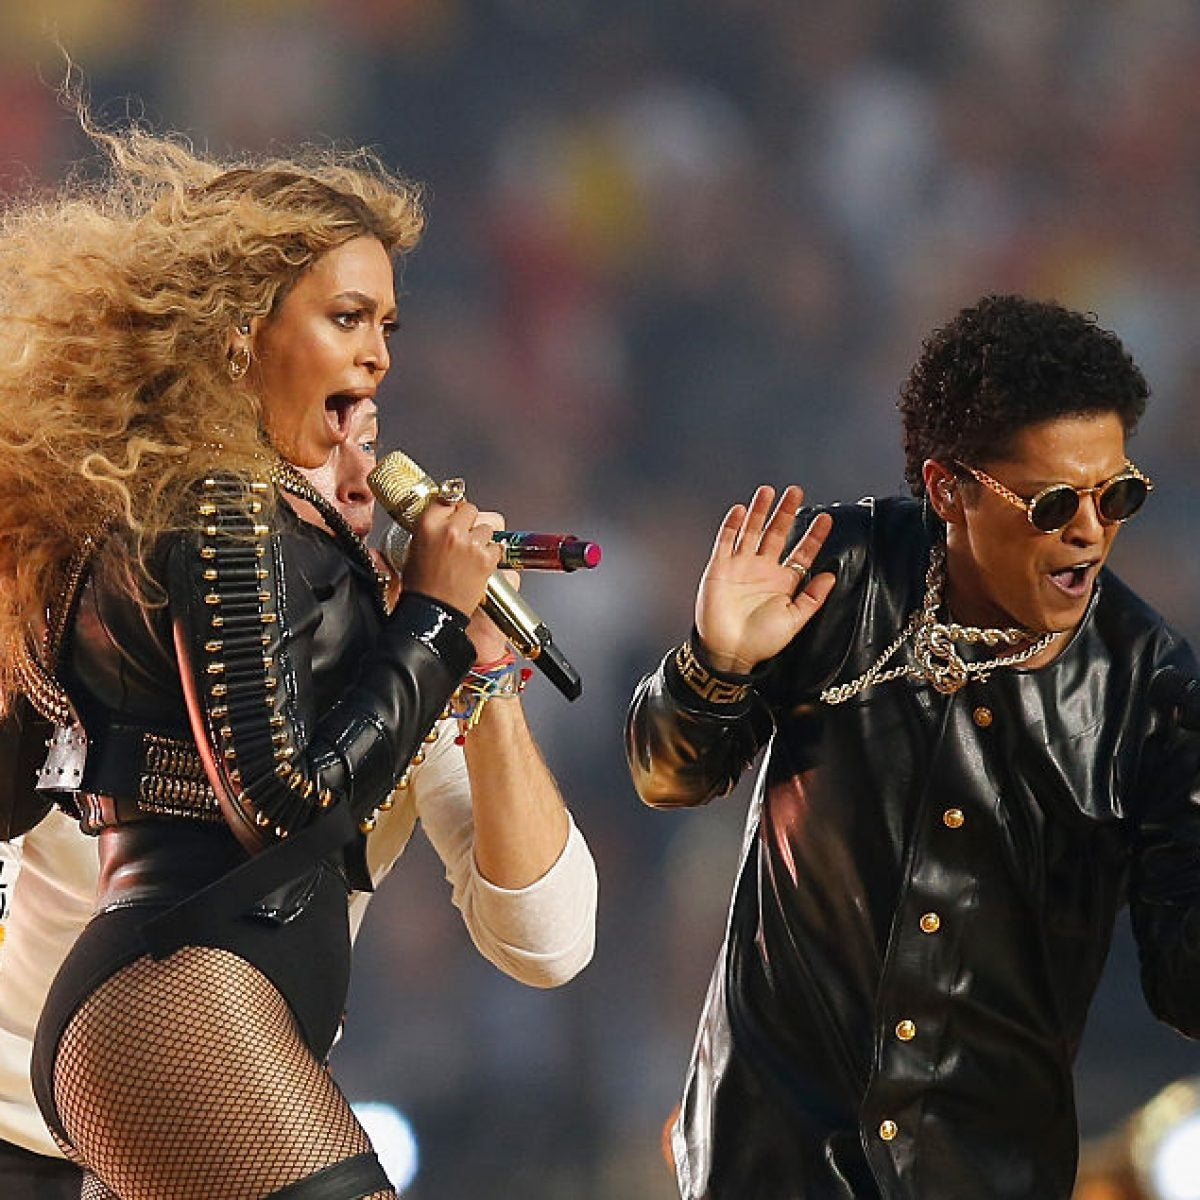 7 of The Best Black Super Bowl Performances of All Time